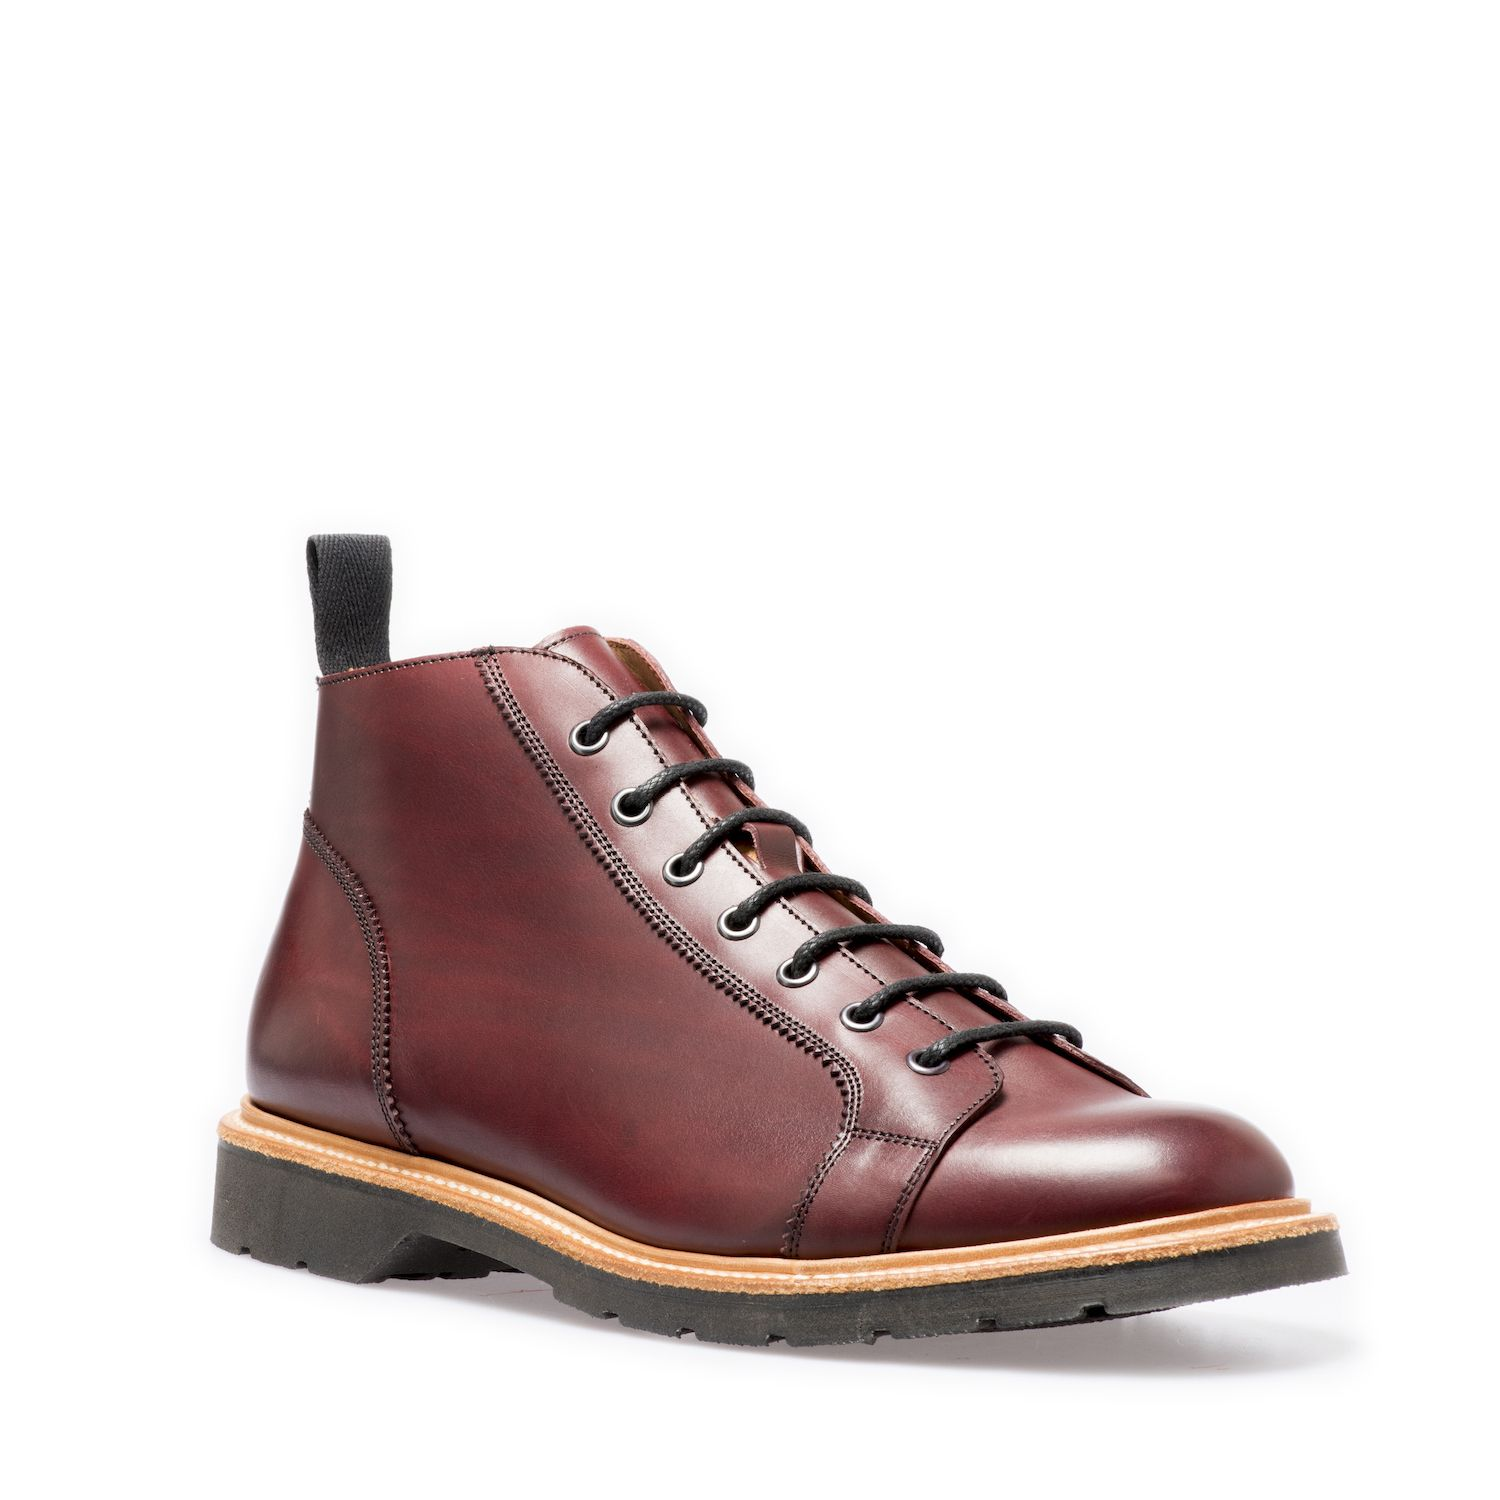 Solovair Monkey Boot In Burgundy